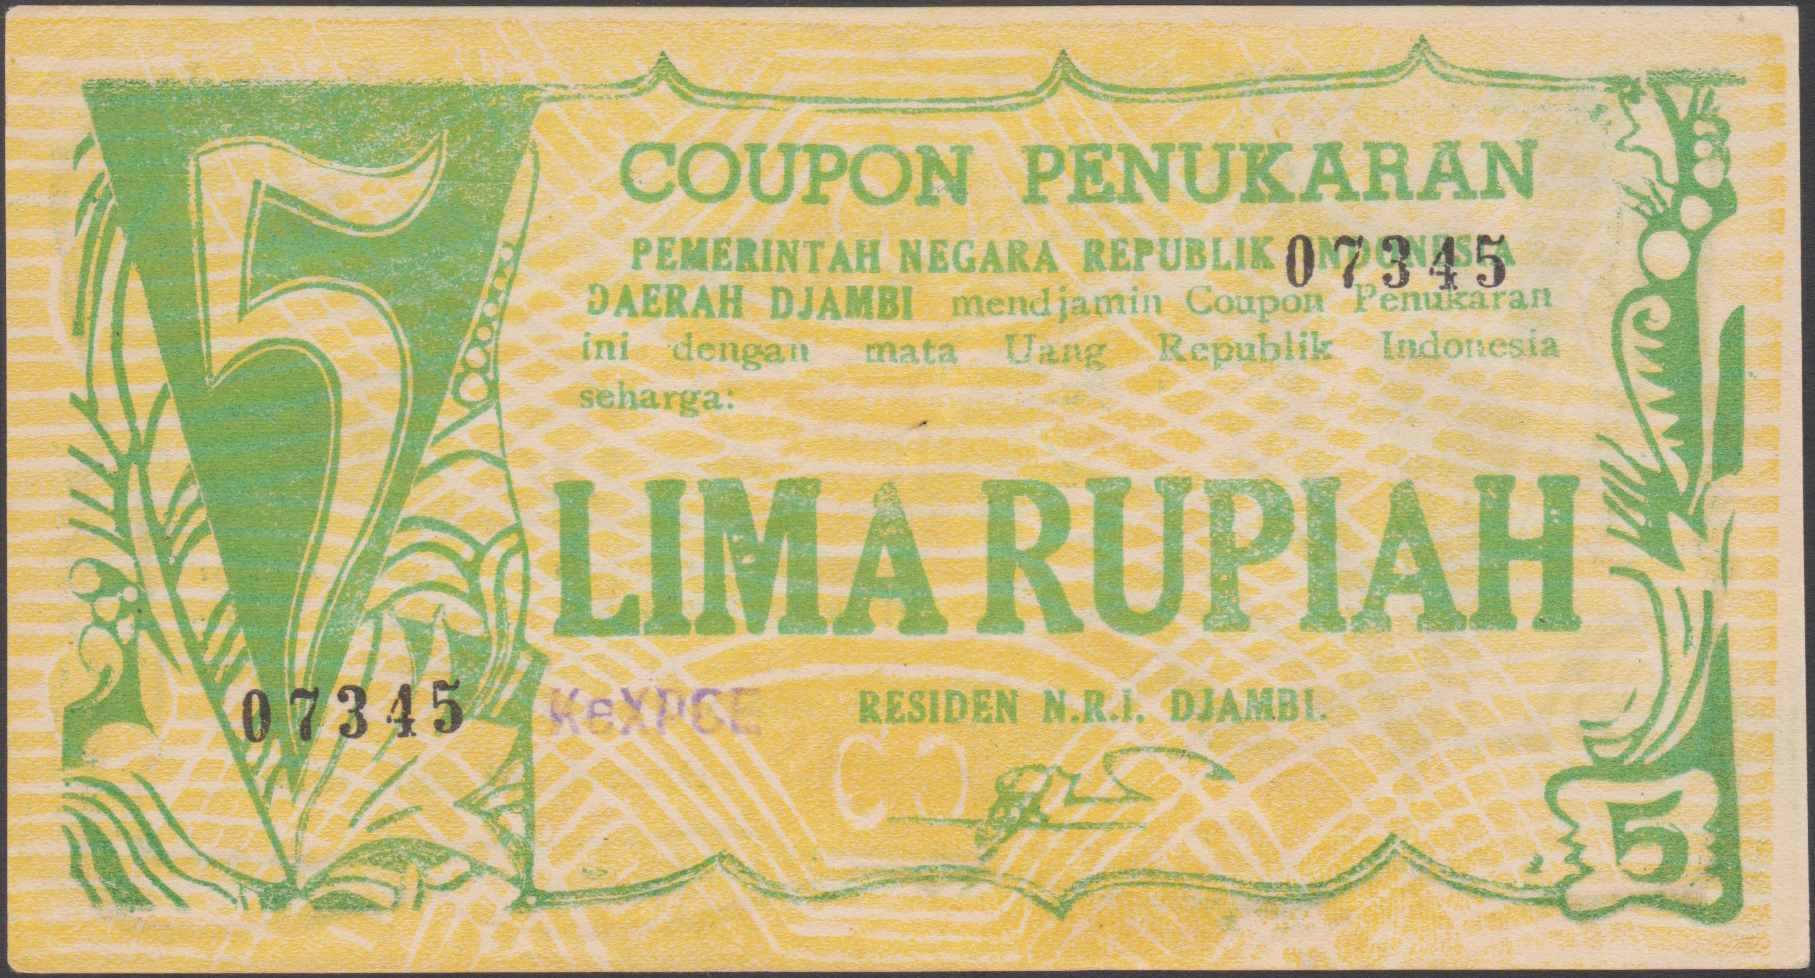 Djambi – letter combinations on  the yellow notes